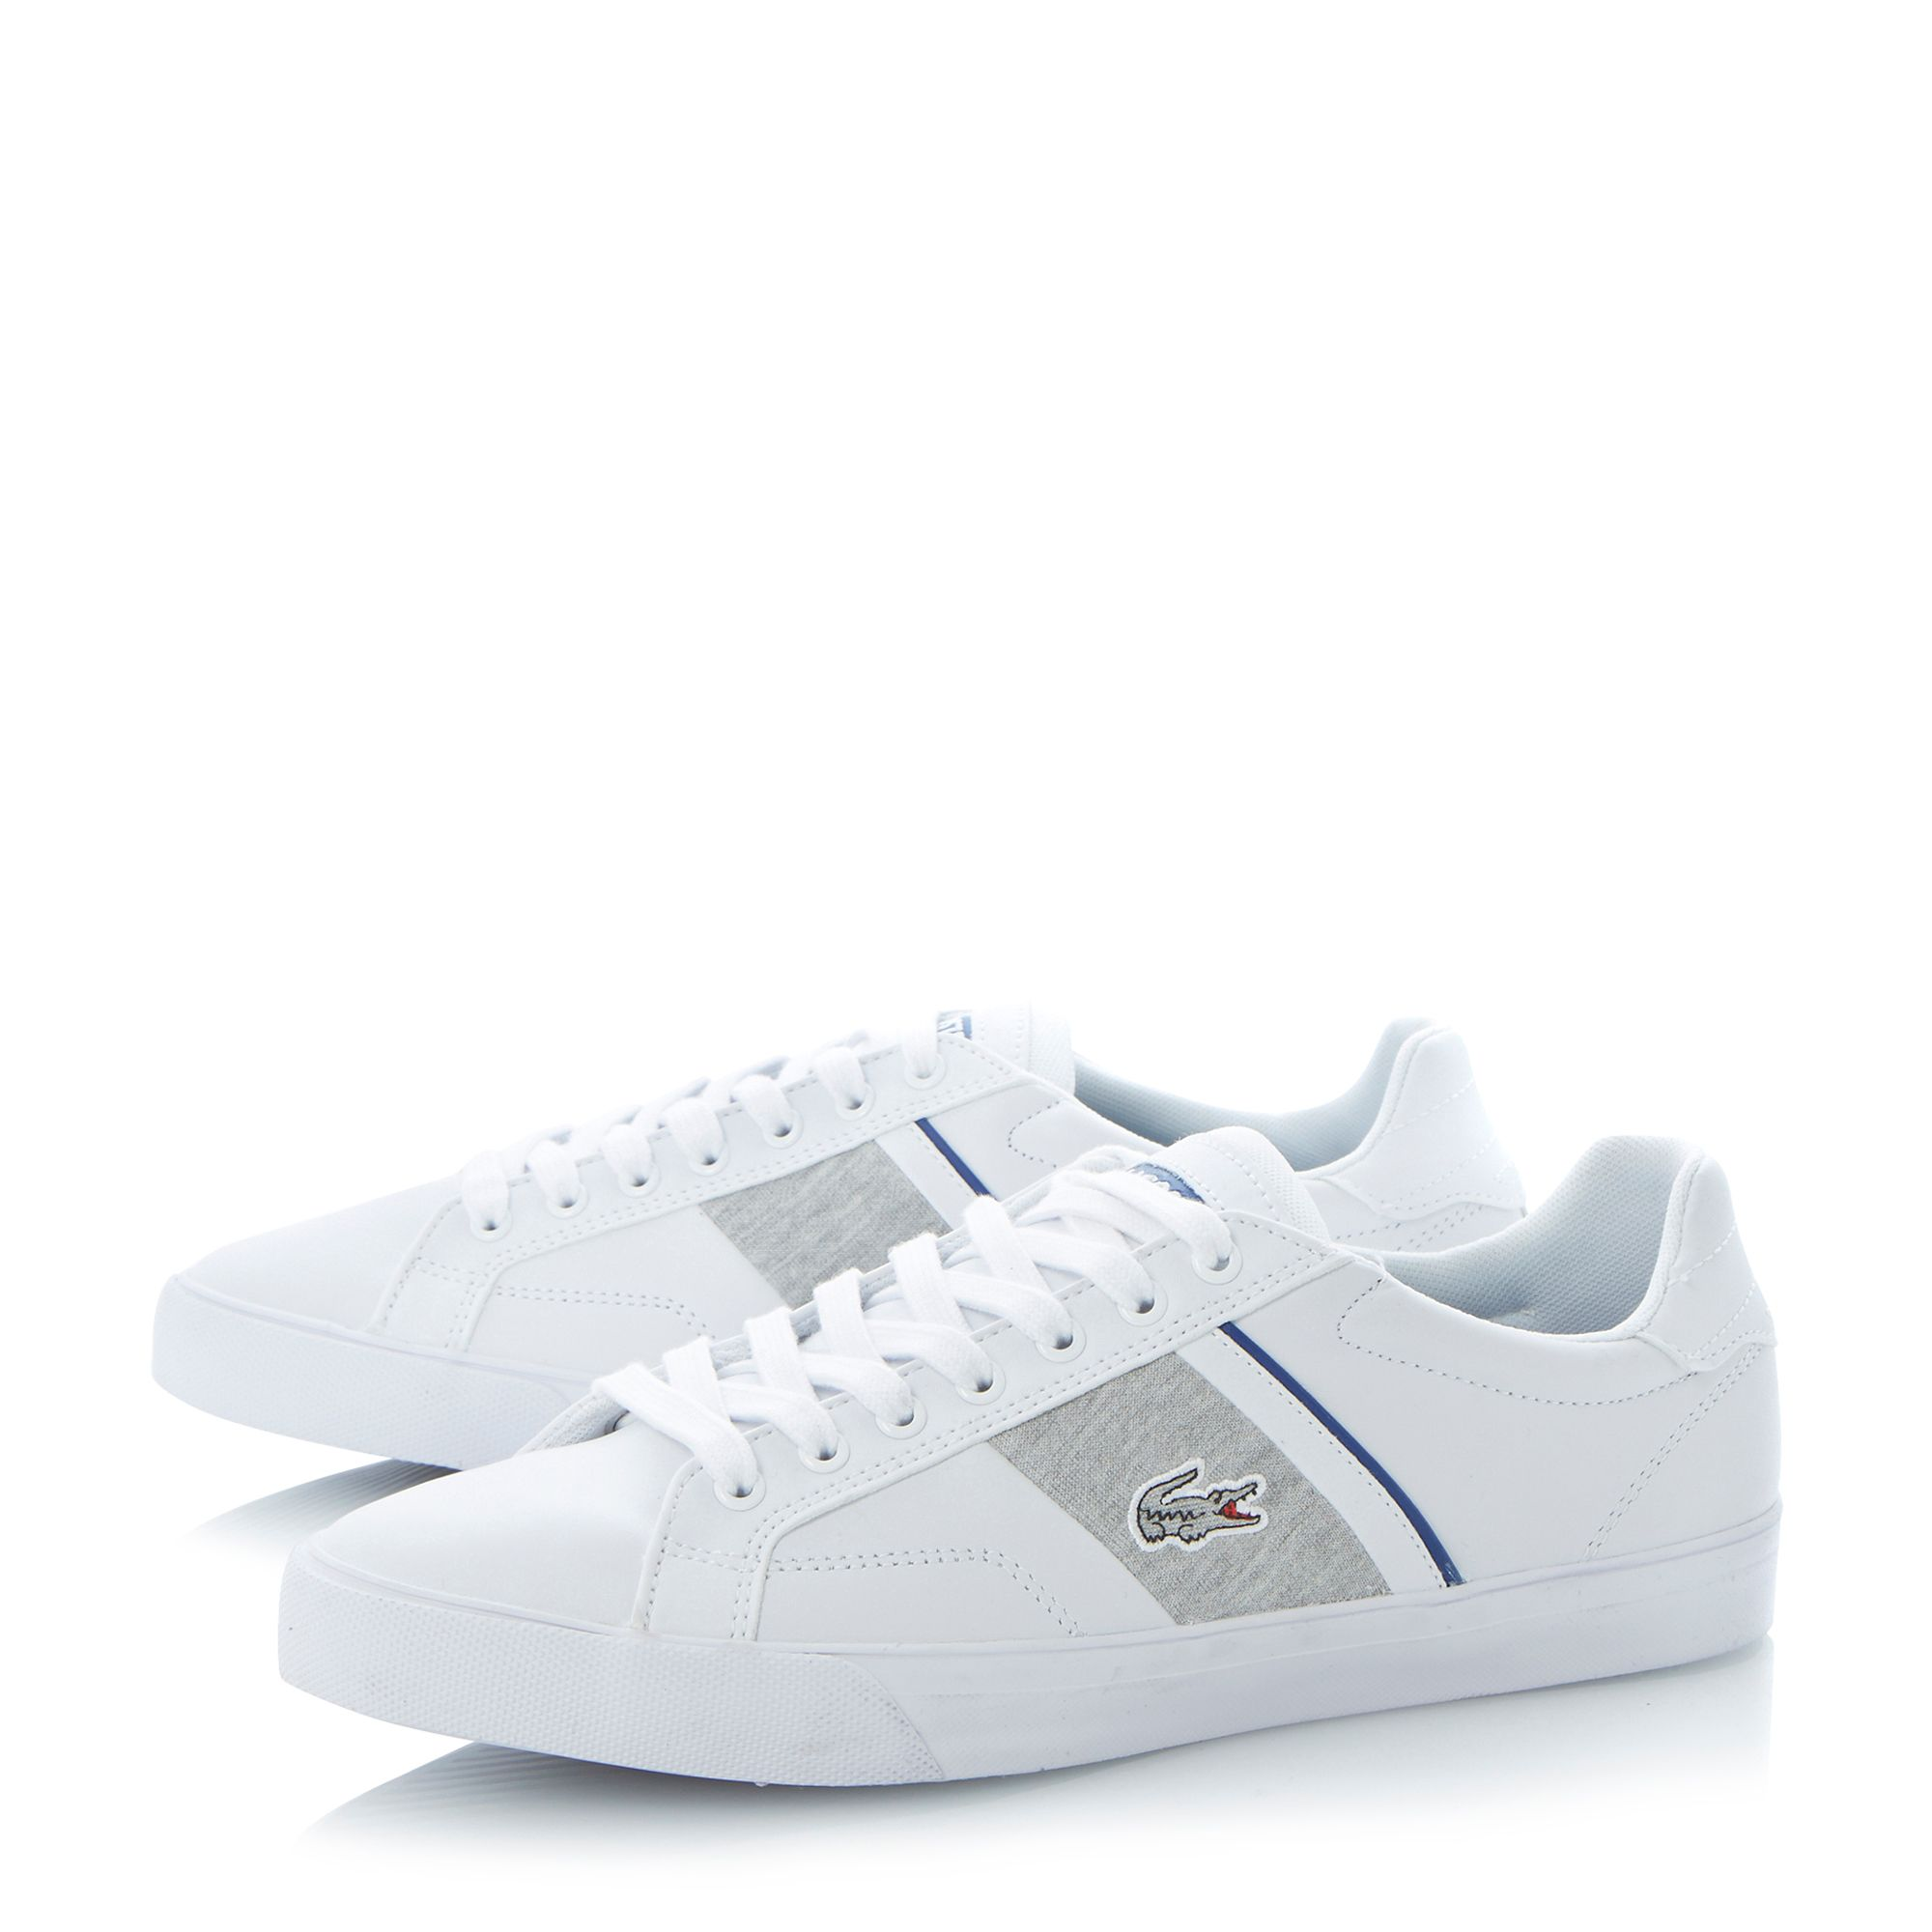 Fairlead lace up trainers